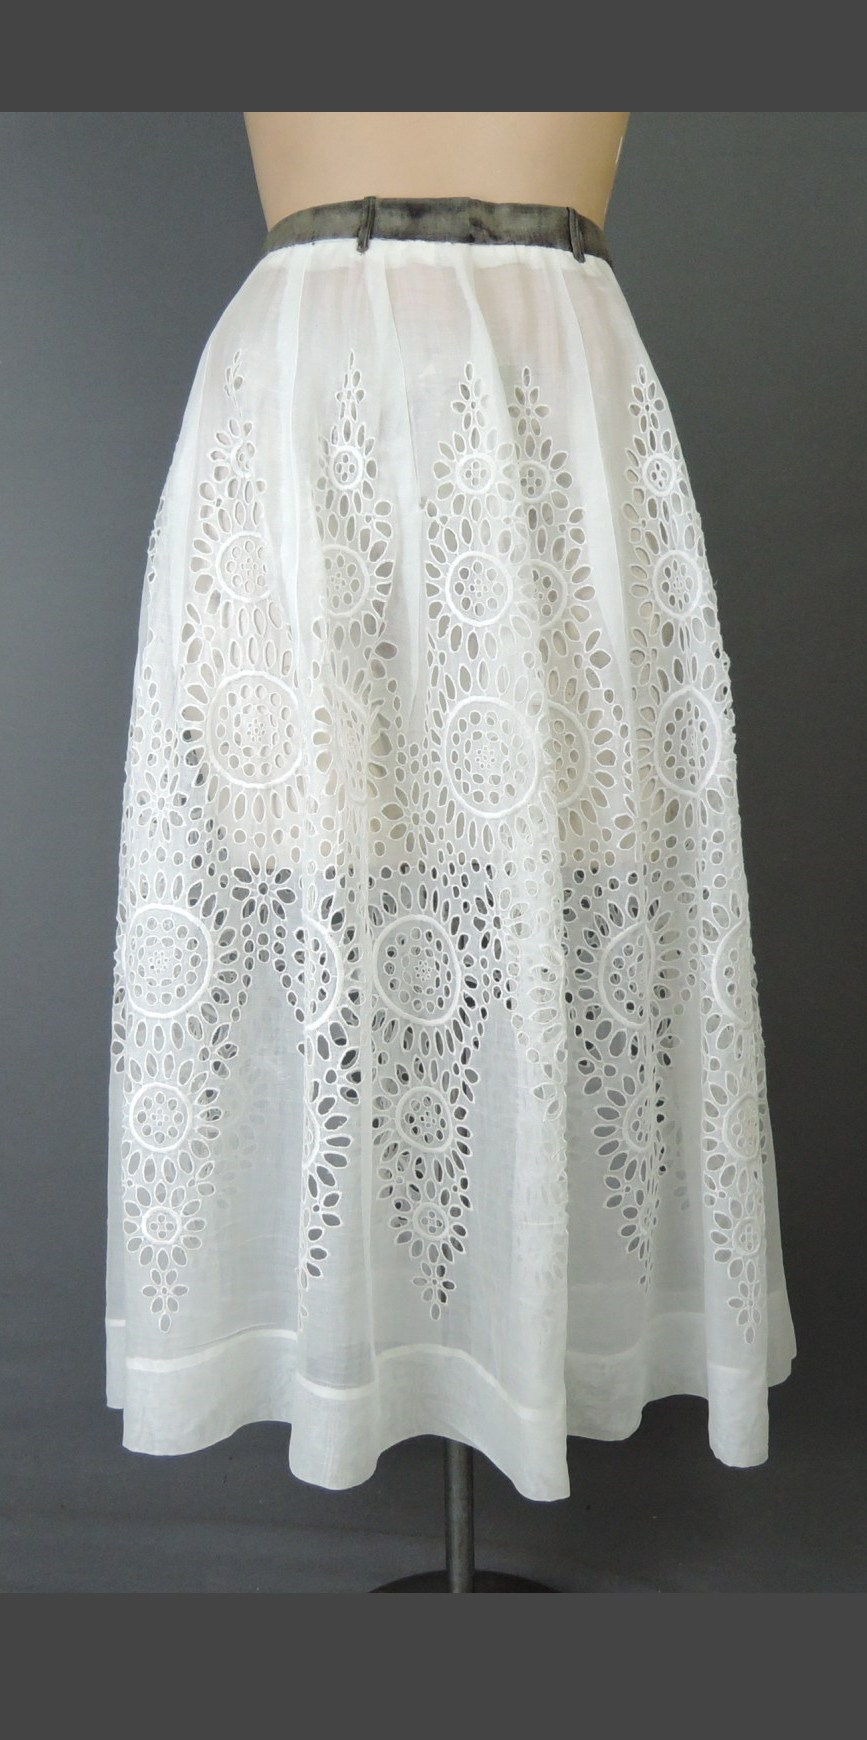 Vintage Sheer Eyelet Skirt 1940s, fits 24 inch waist, Cotton Organdy